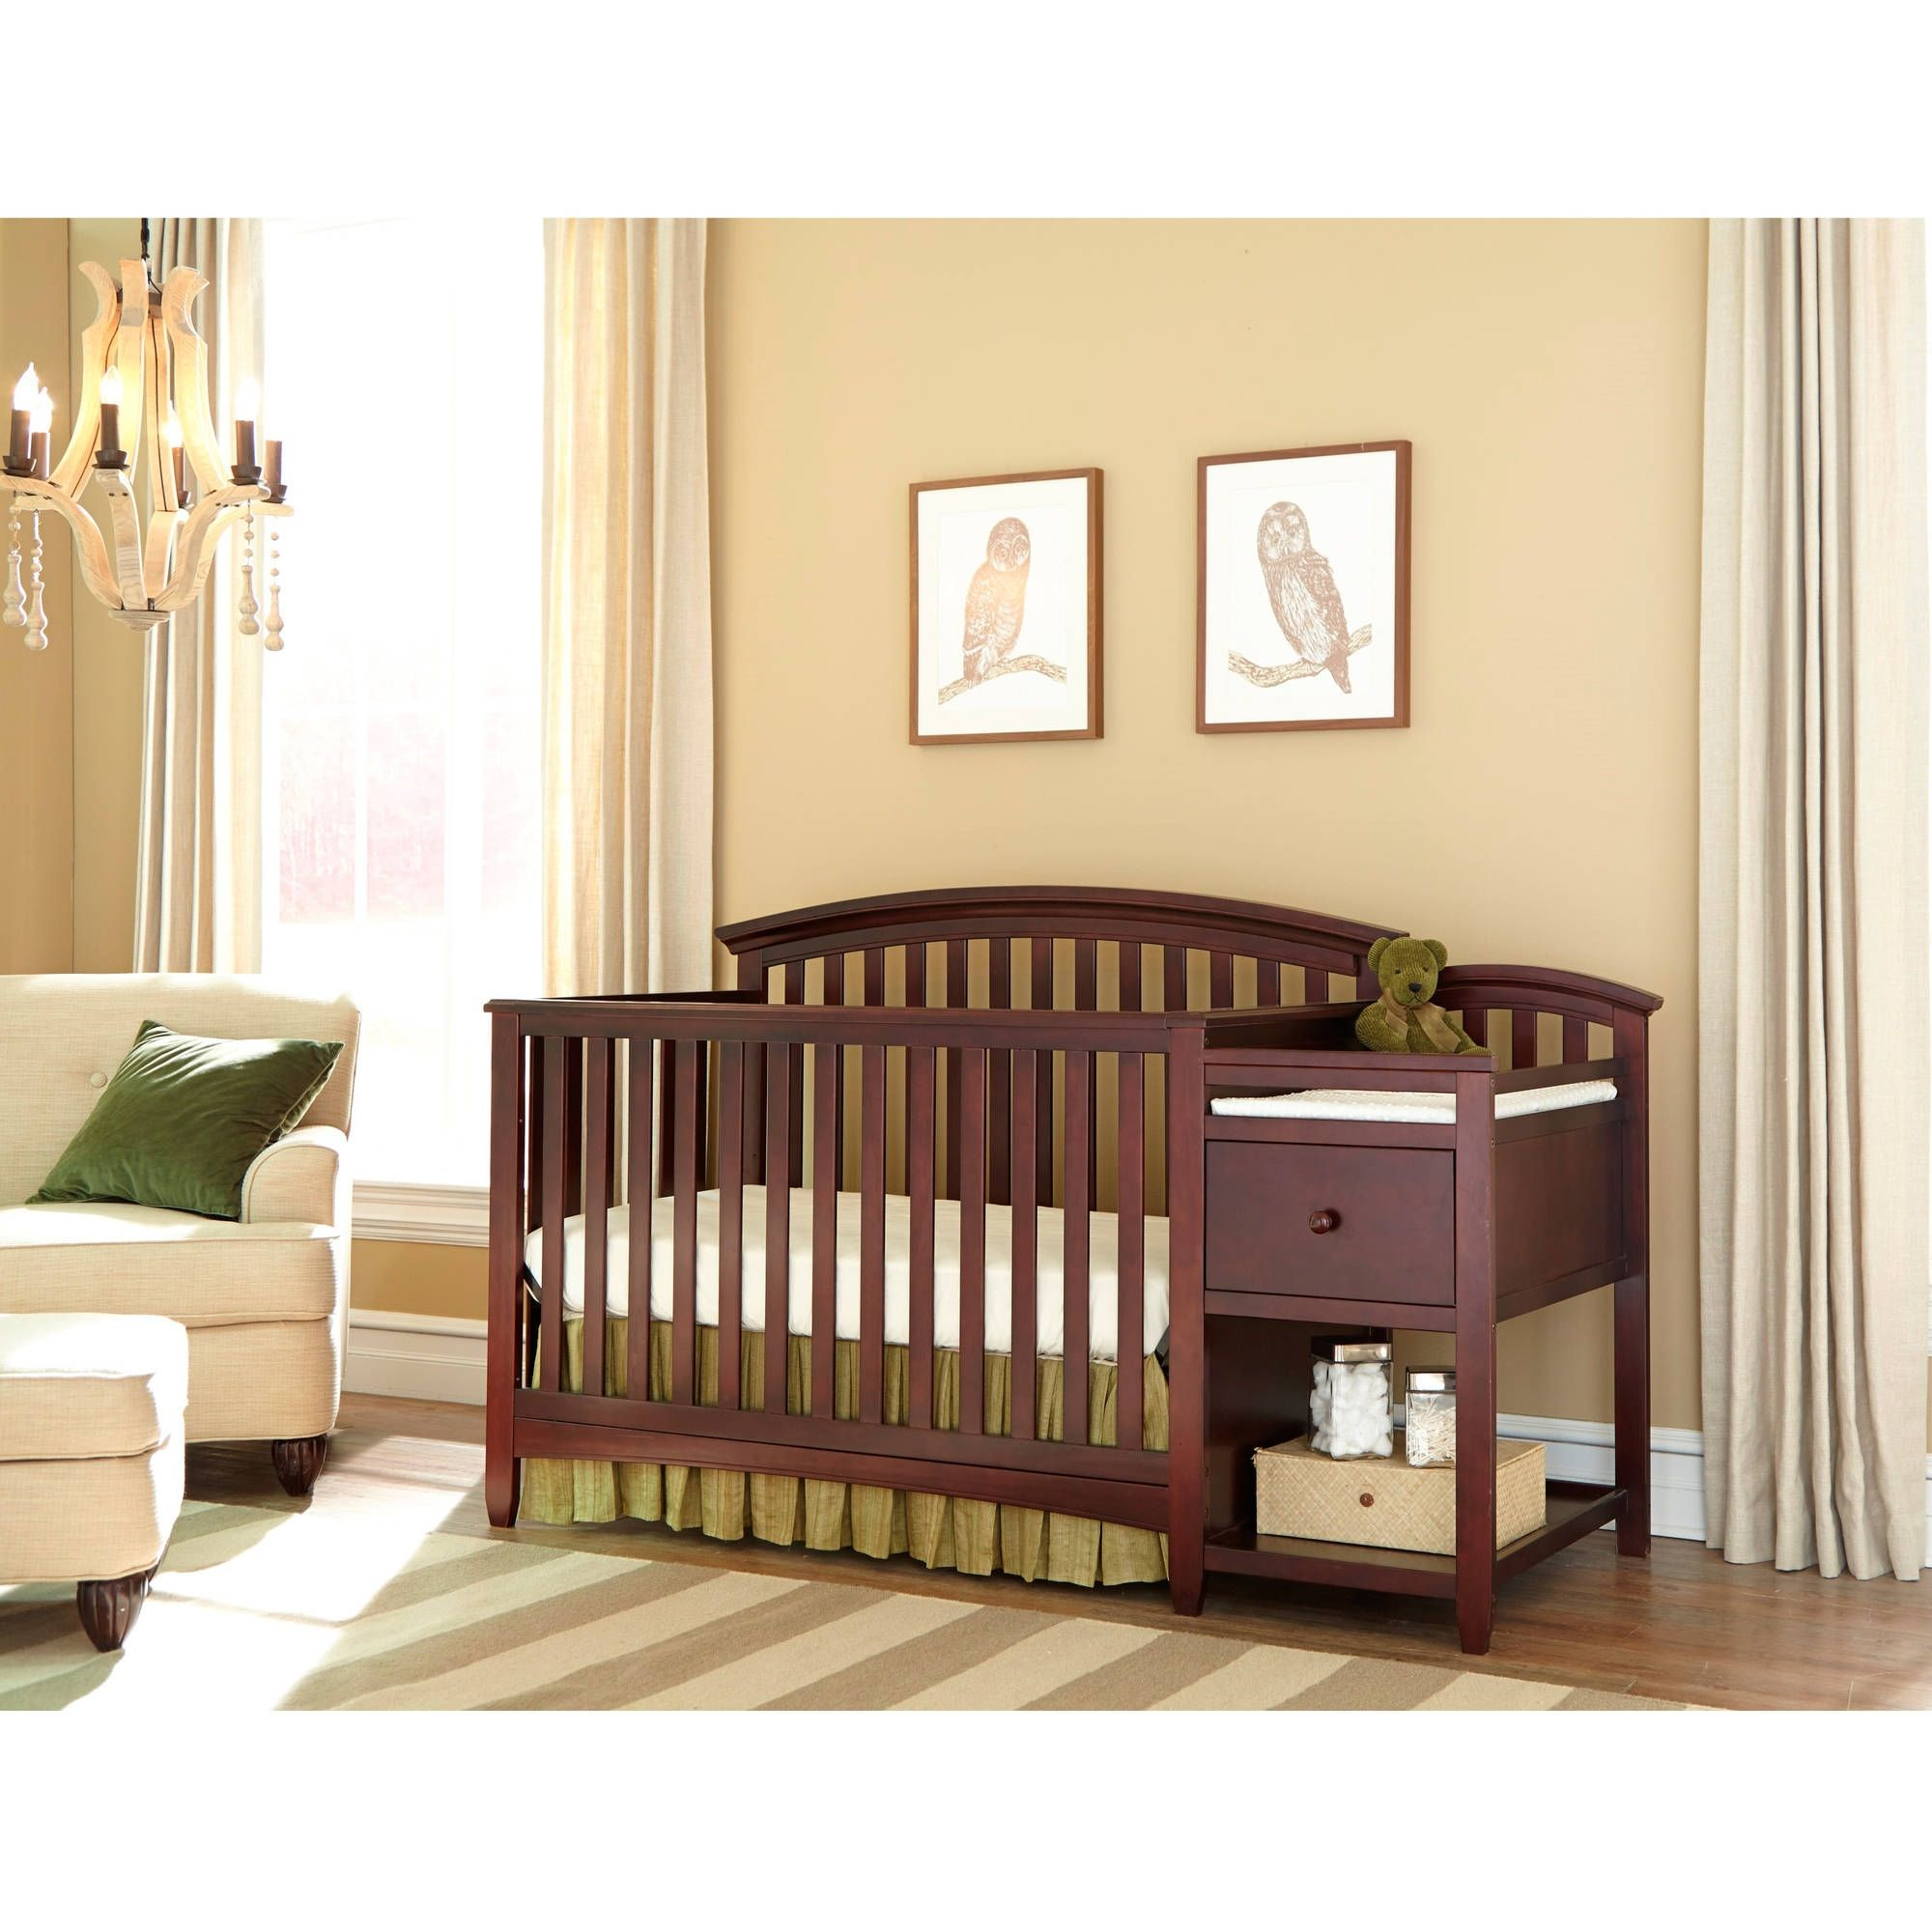 Chocolate Mist Changing Table | http://samhosted.com | Pinterest